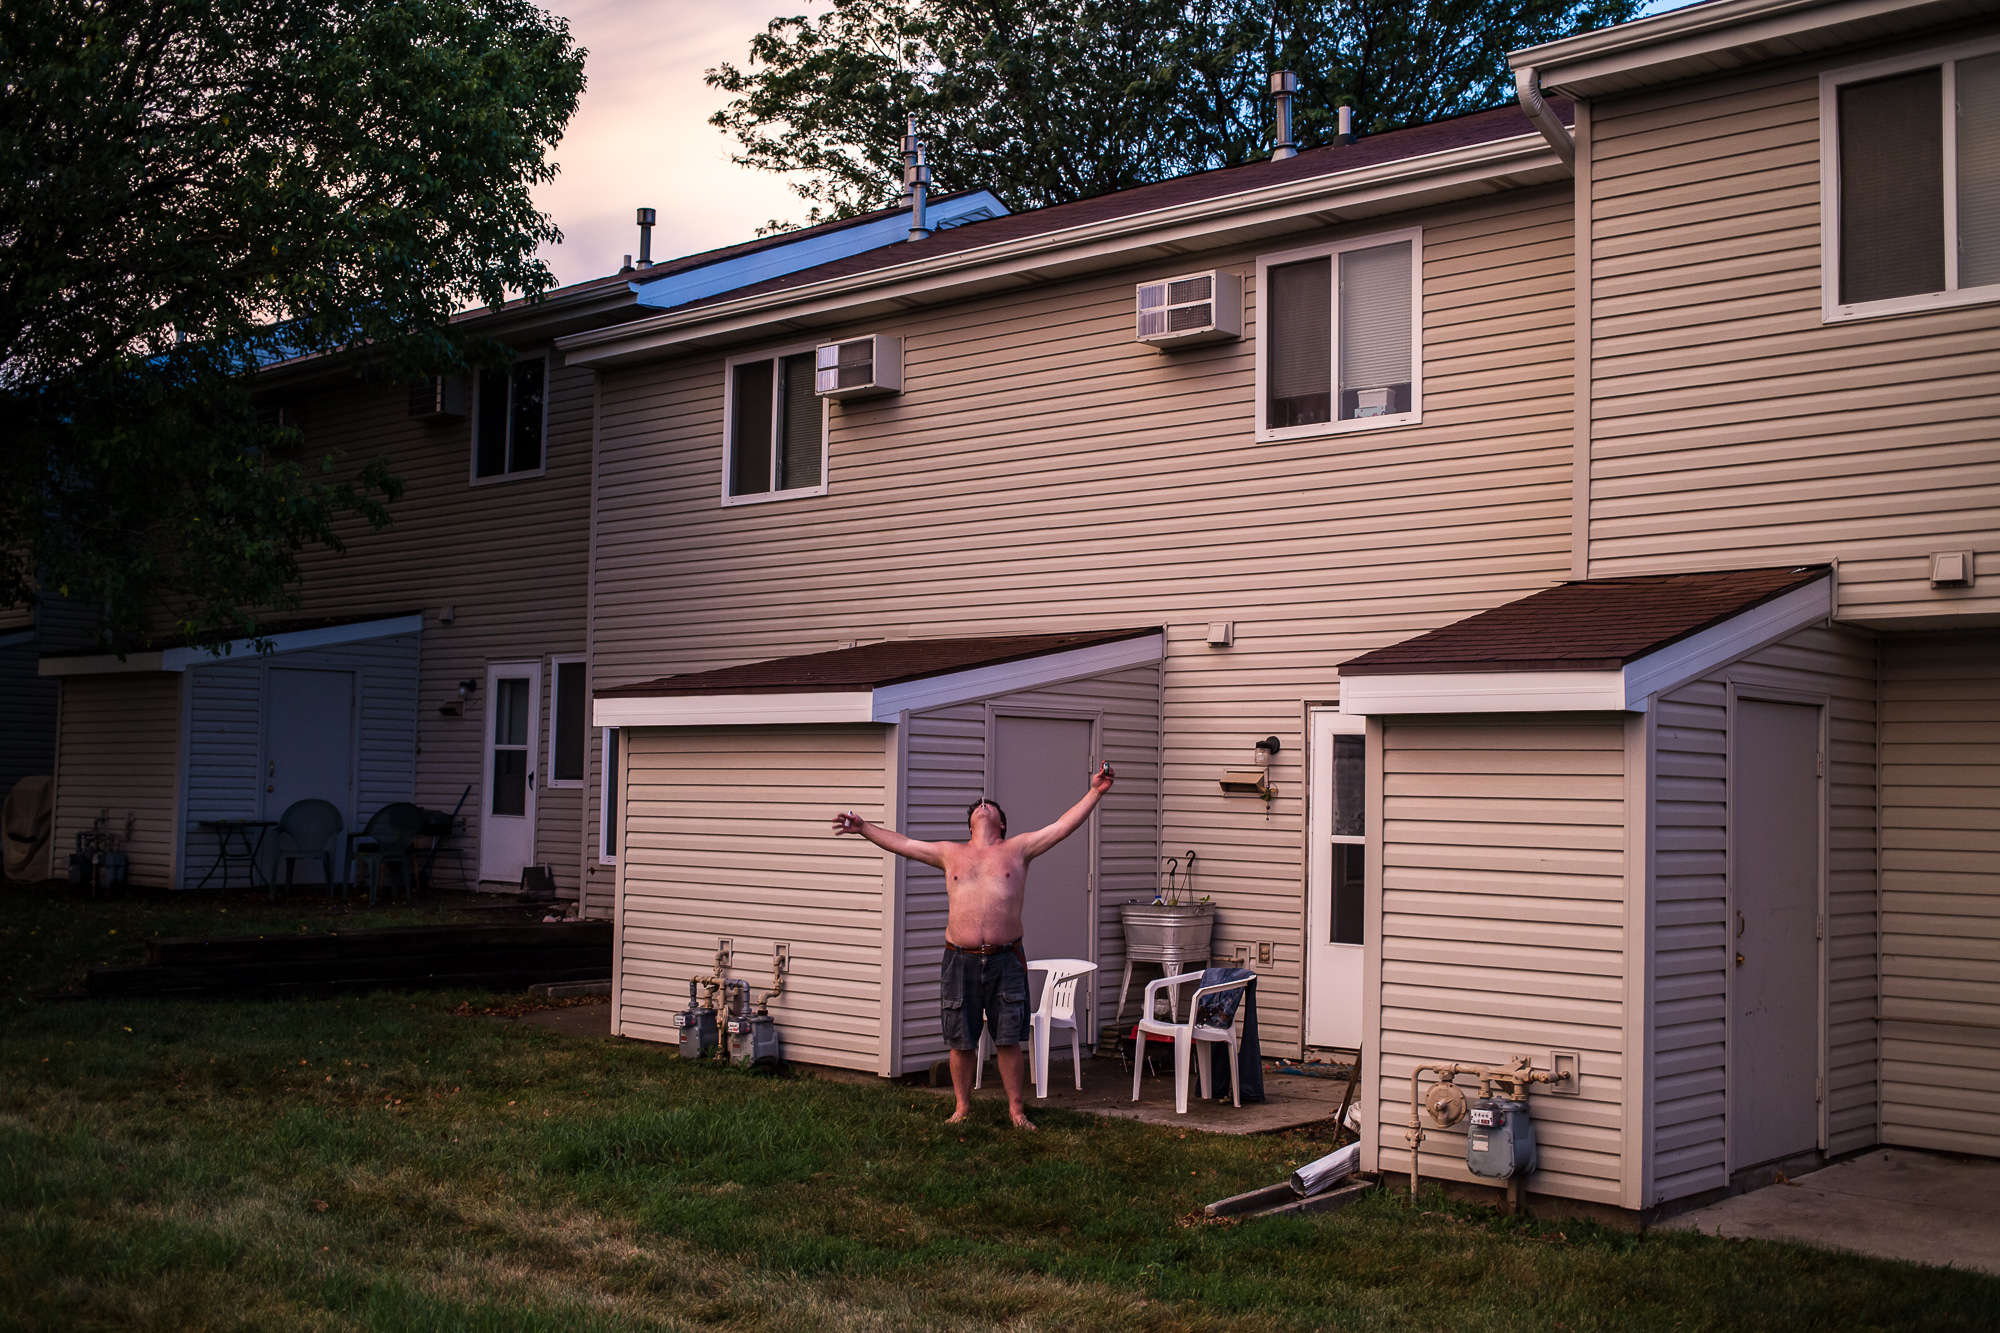 Tony Rexroat enjoys the evening air on Monday, July 22, 2013 in Webster City, IA.